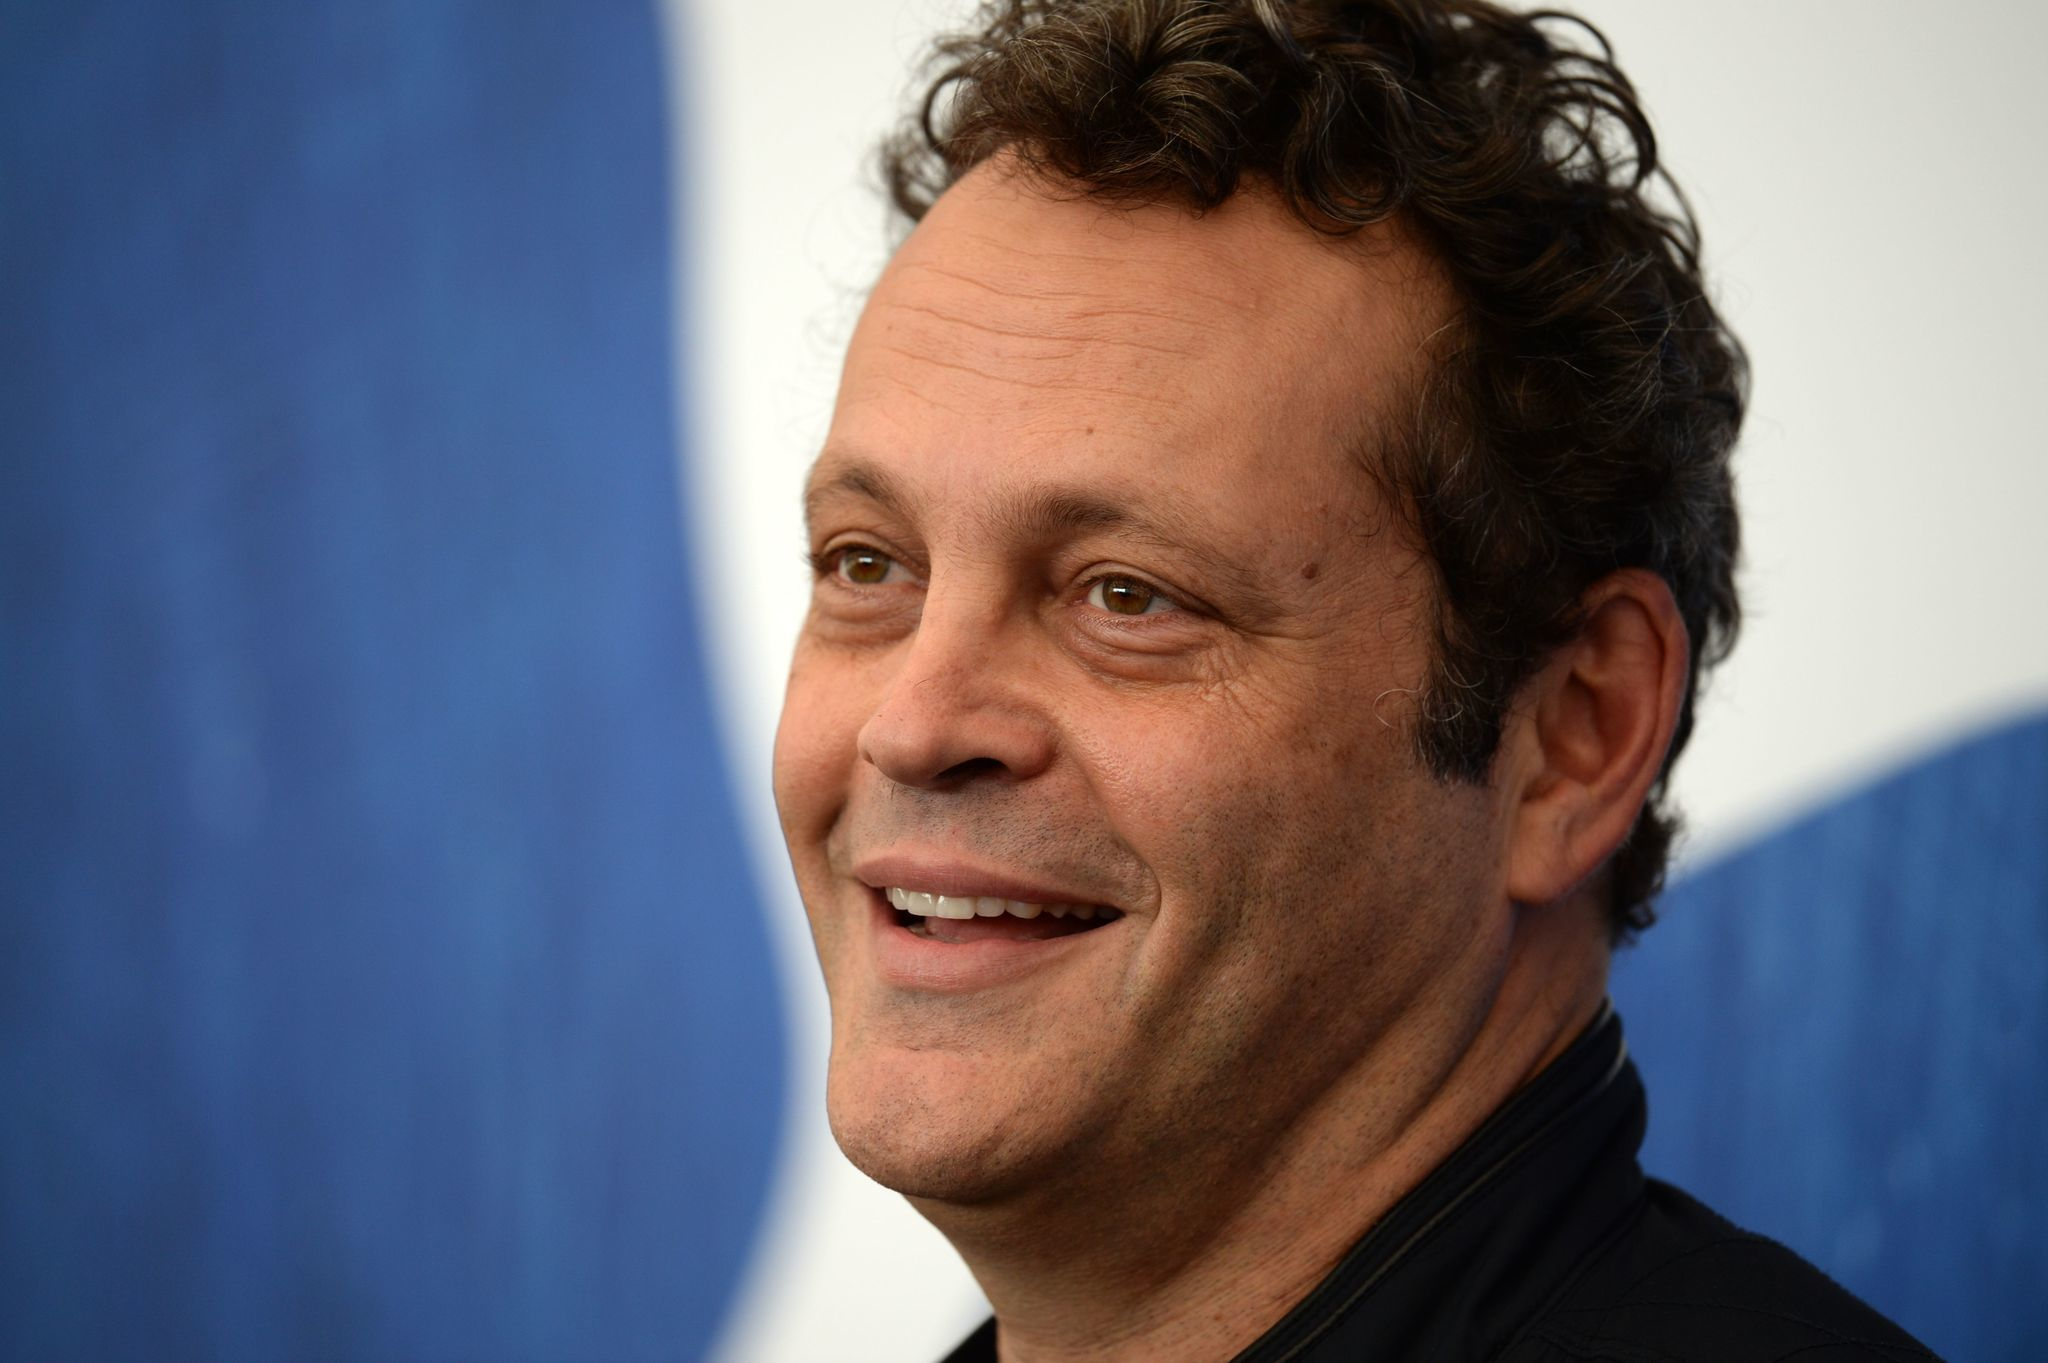 how tall is vince vaughn